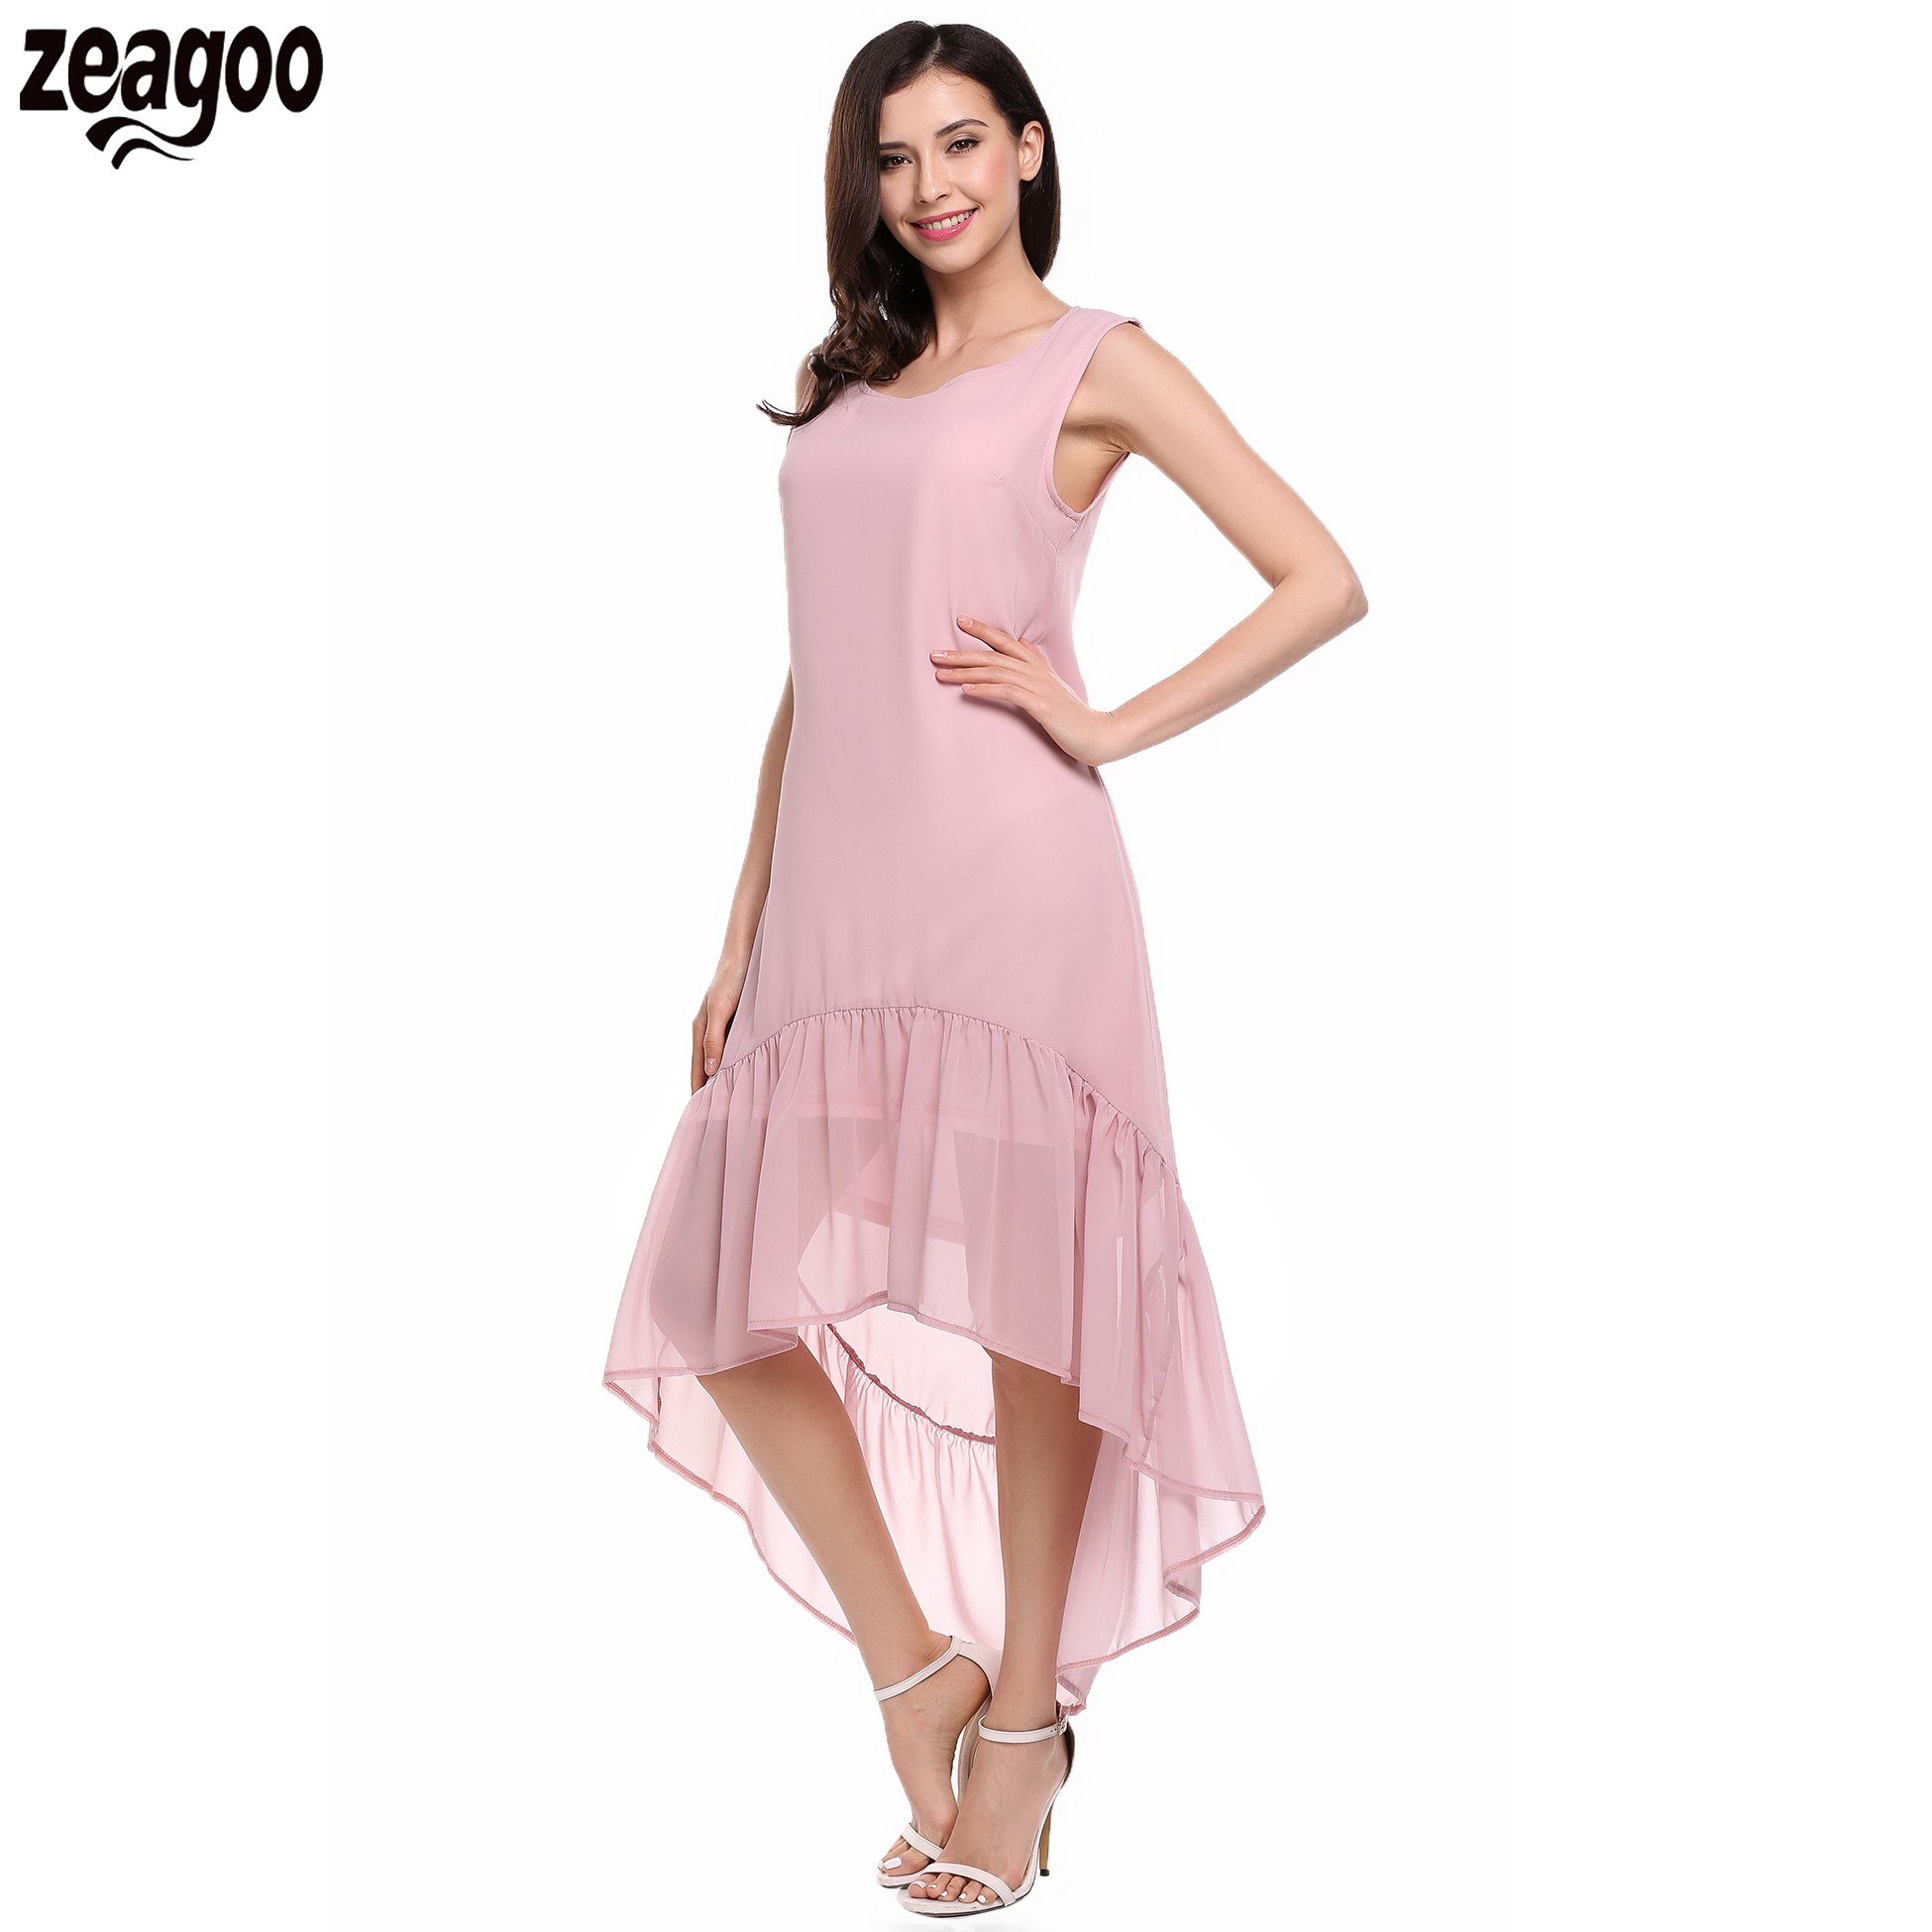 5e27bc90719 Zeagoo Women Dresses Chiffon O-Neck Sleeveless Solid High Low Ruffles Hem  Full Length Casual Dress Party Beach Vestido Plus Size